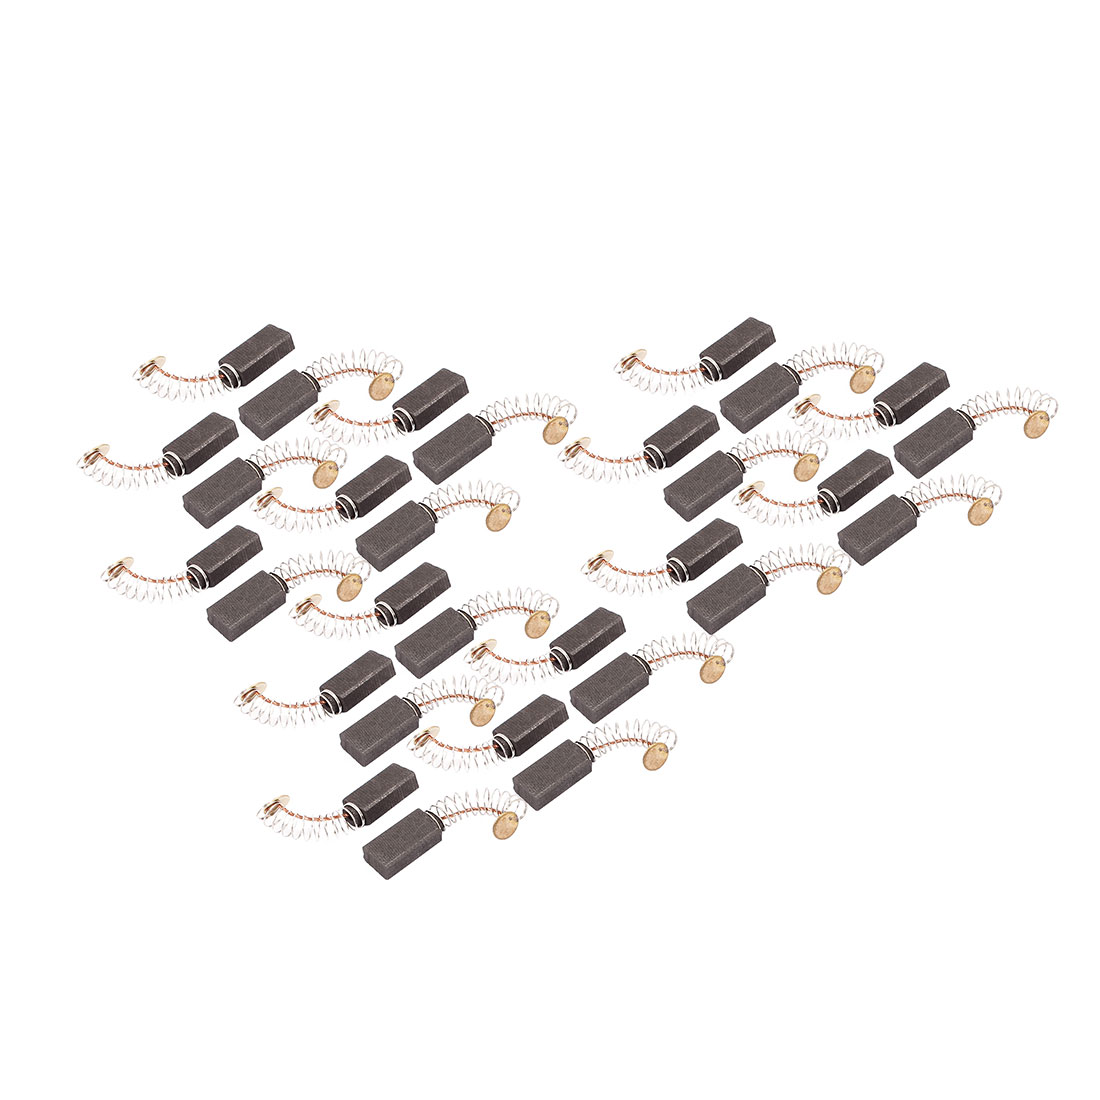 15 Pairs Electric Drill Motor Rotary Power Tool Carbon Brush 5 x 8 x 15mm Black